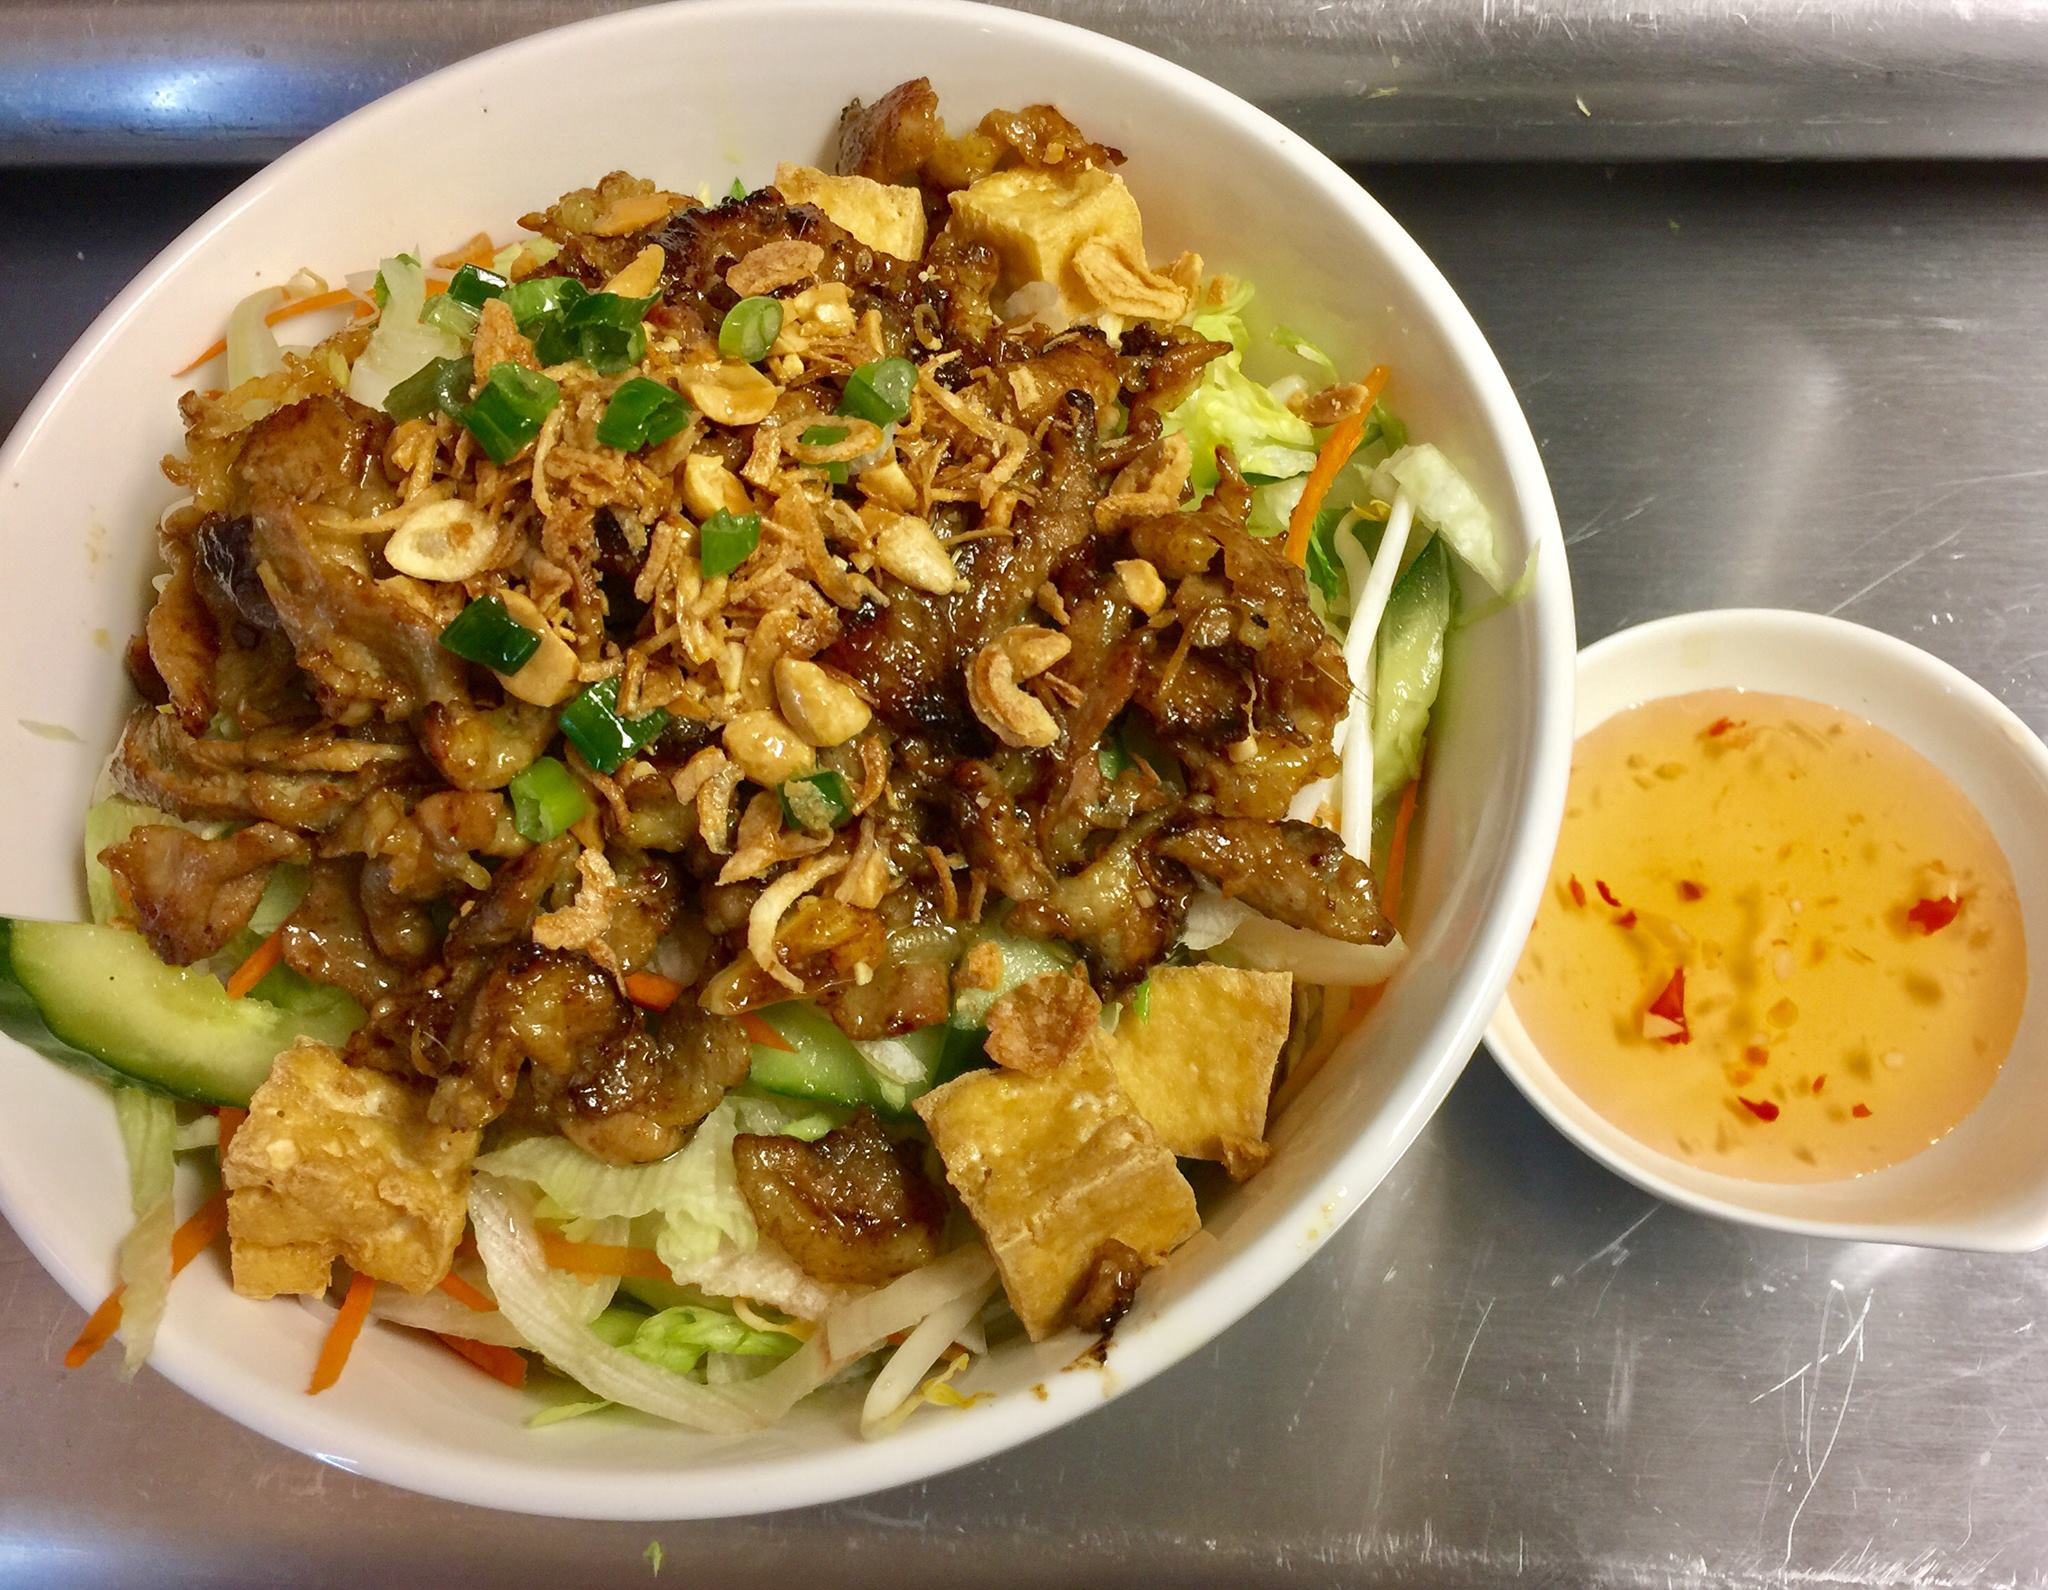 Noodle Sald bowl with Pork and Tofu